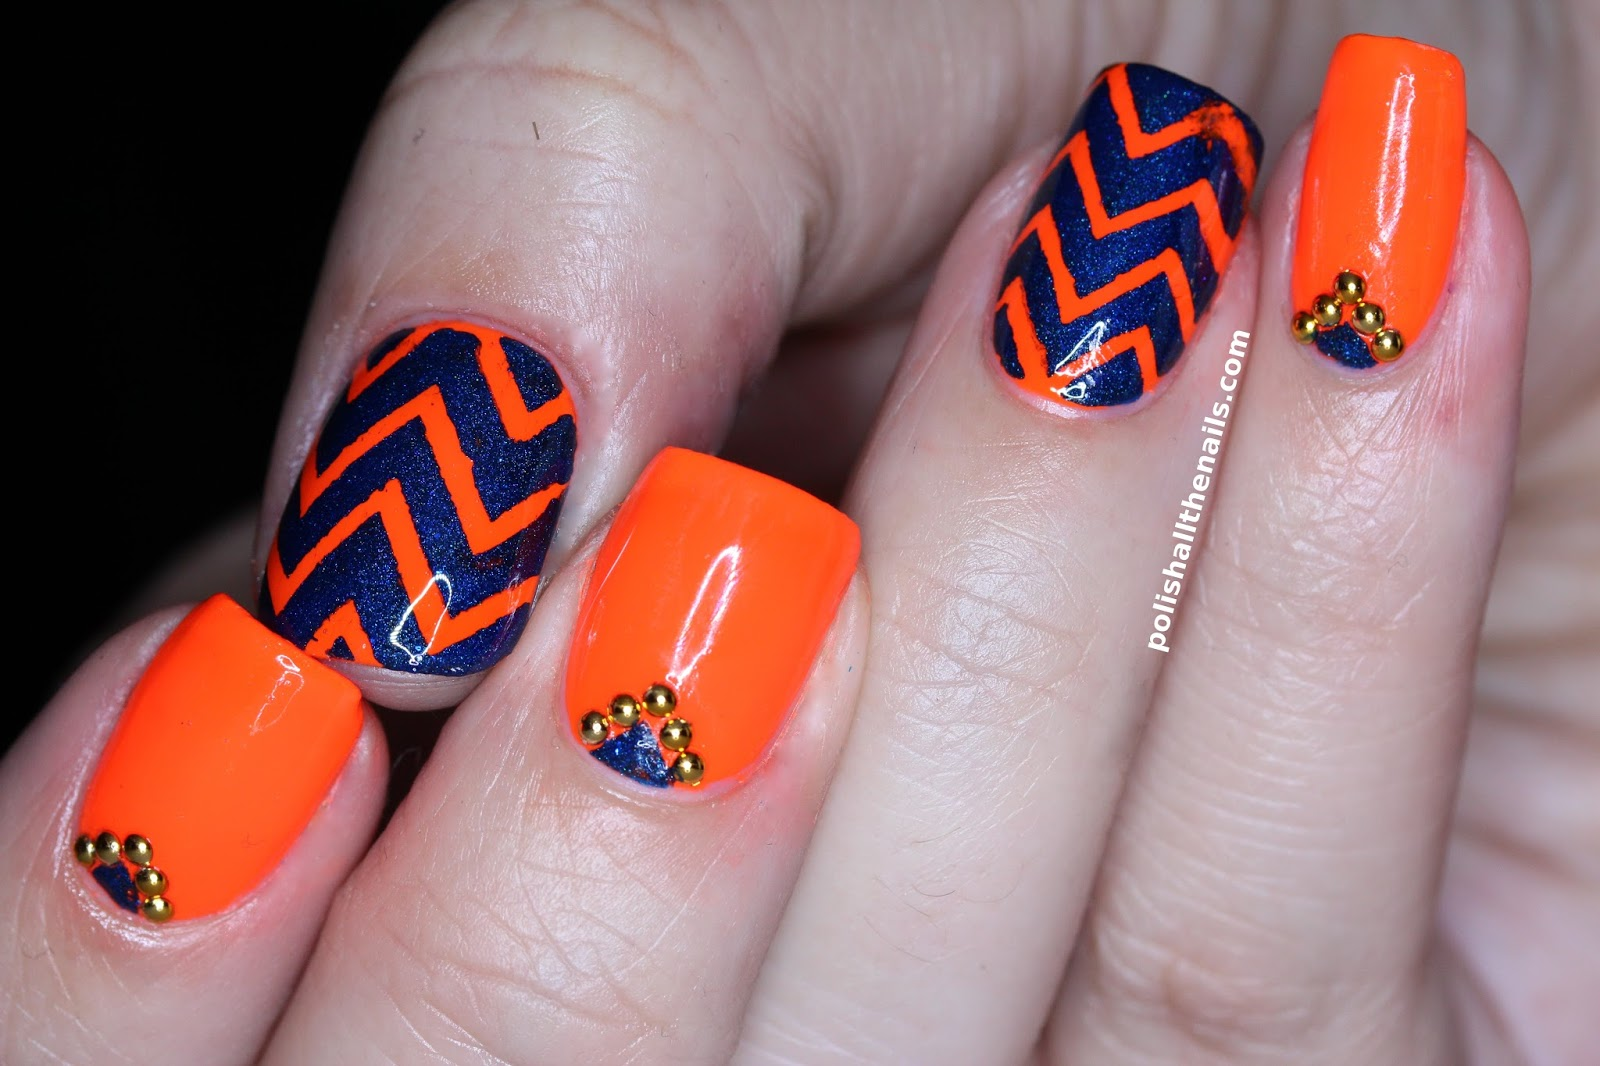 Nail Designs With Orange And Blue: Create a neon orange and dark ...